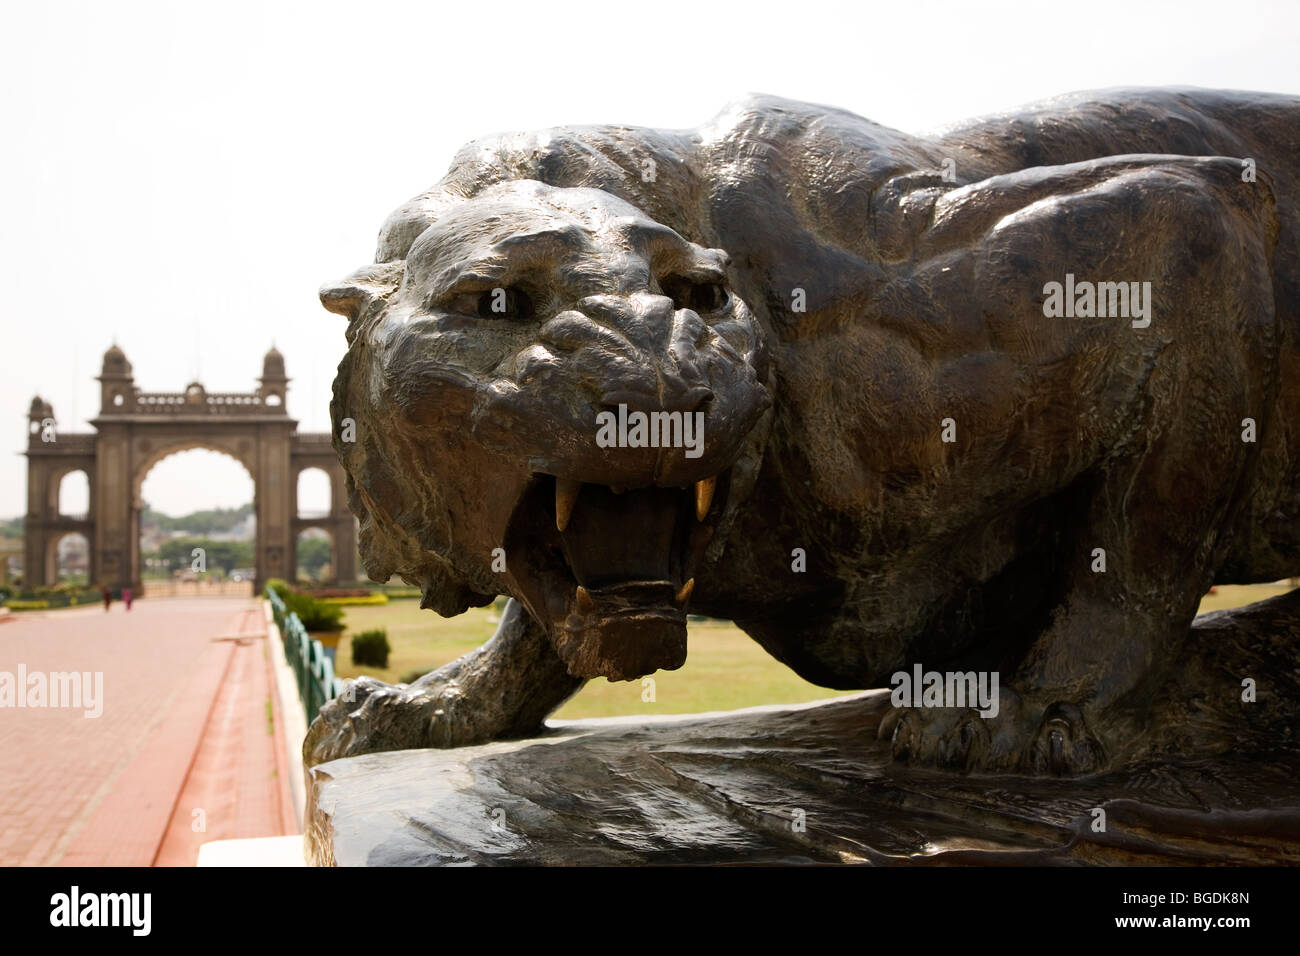 A tiger statue stands in the grounds of Mysore's Amba Vilas Palace, India. - Stock Image